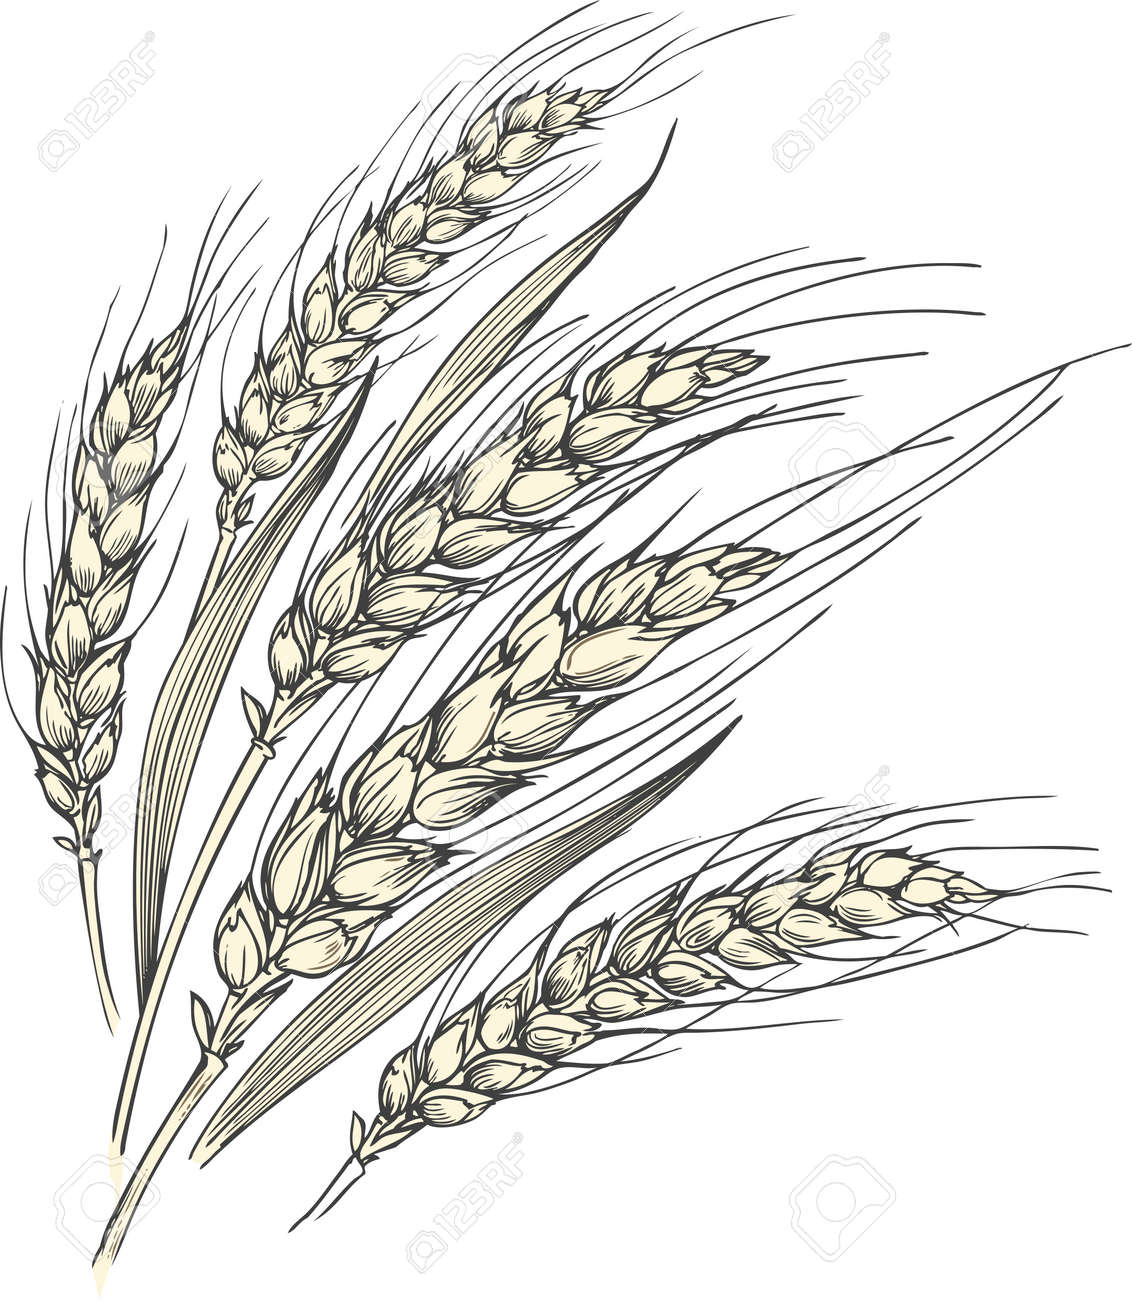 Hand-drawn vector illustration of a few ripe wheat ears with leaves. - 124114317